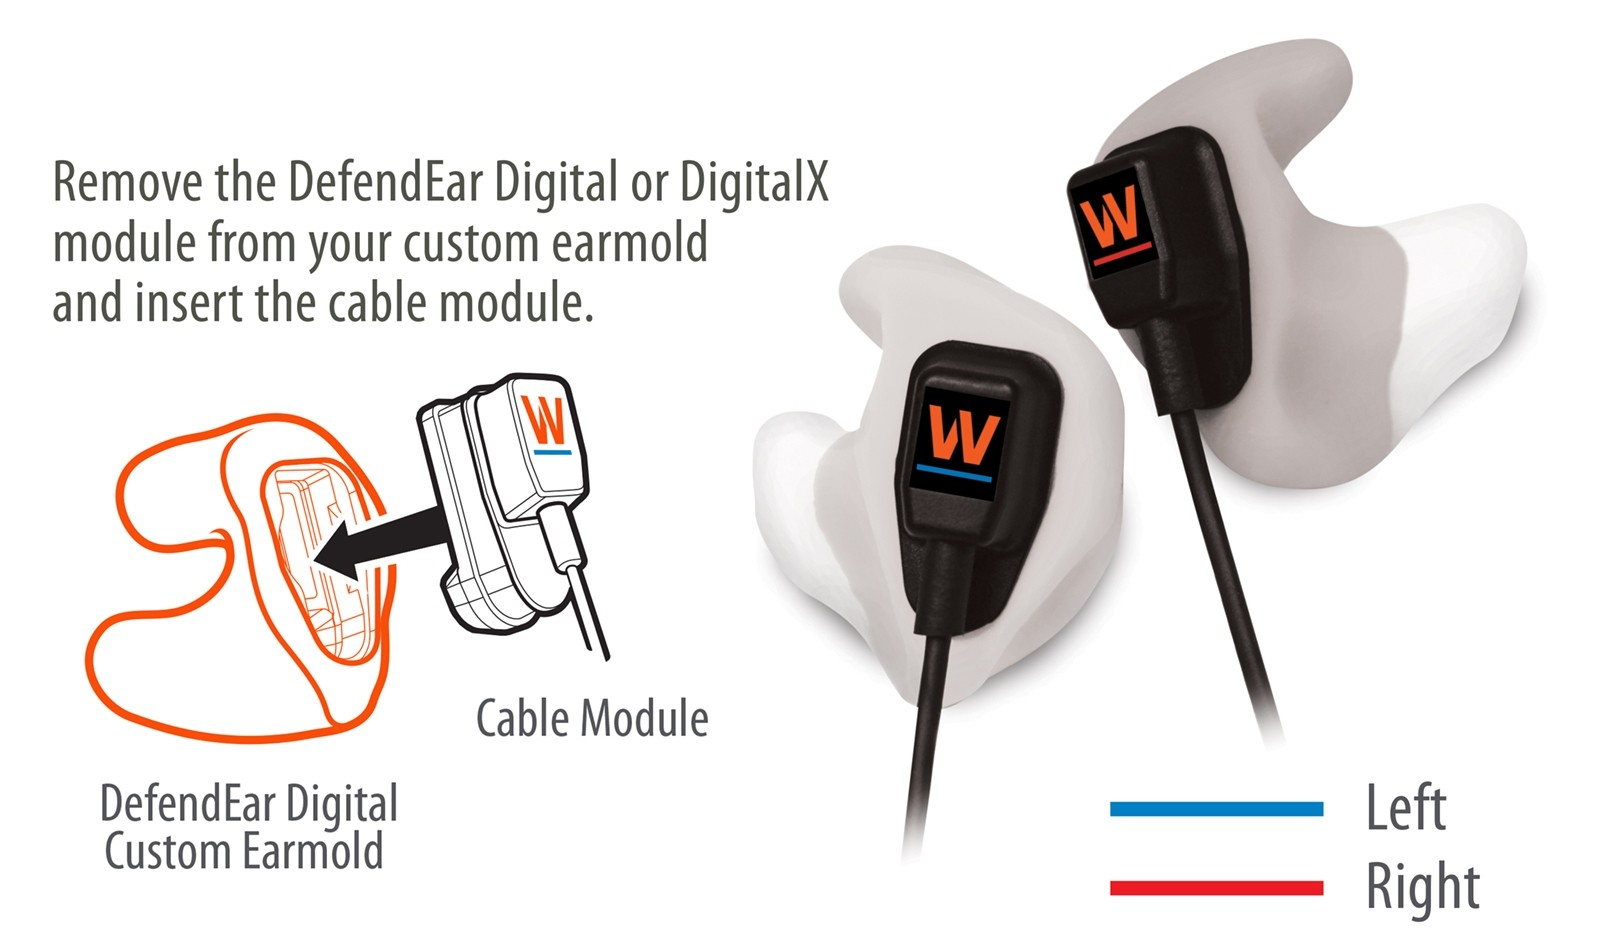 DefendEar Digital SmartPhone Cable